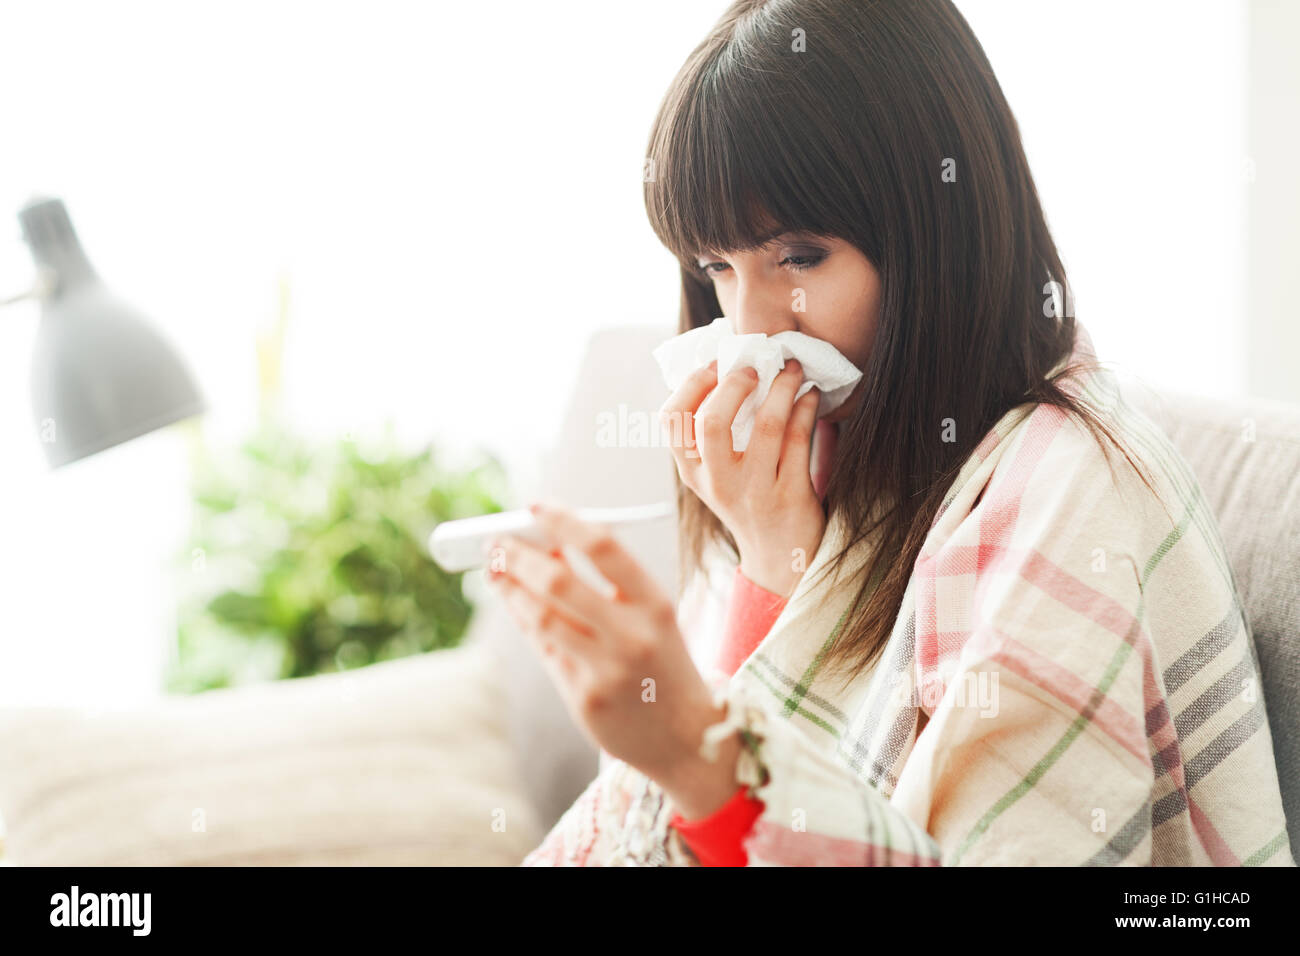 Young sick woman with cold and flu, she is blowing her nose and measuring her body temperature - Stock Image